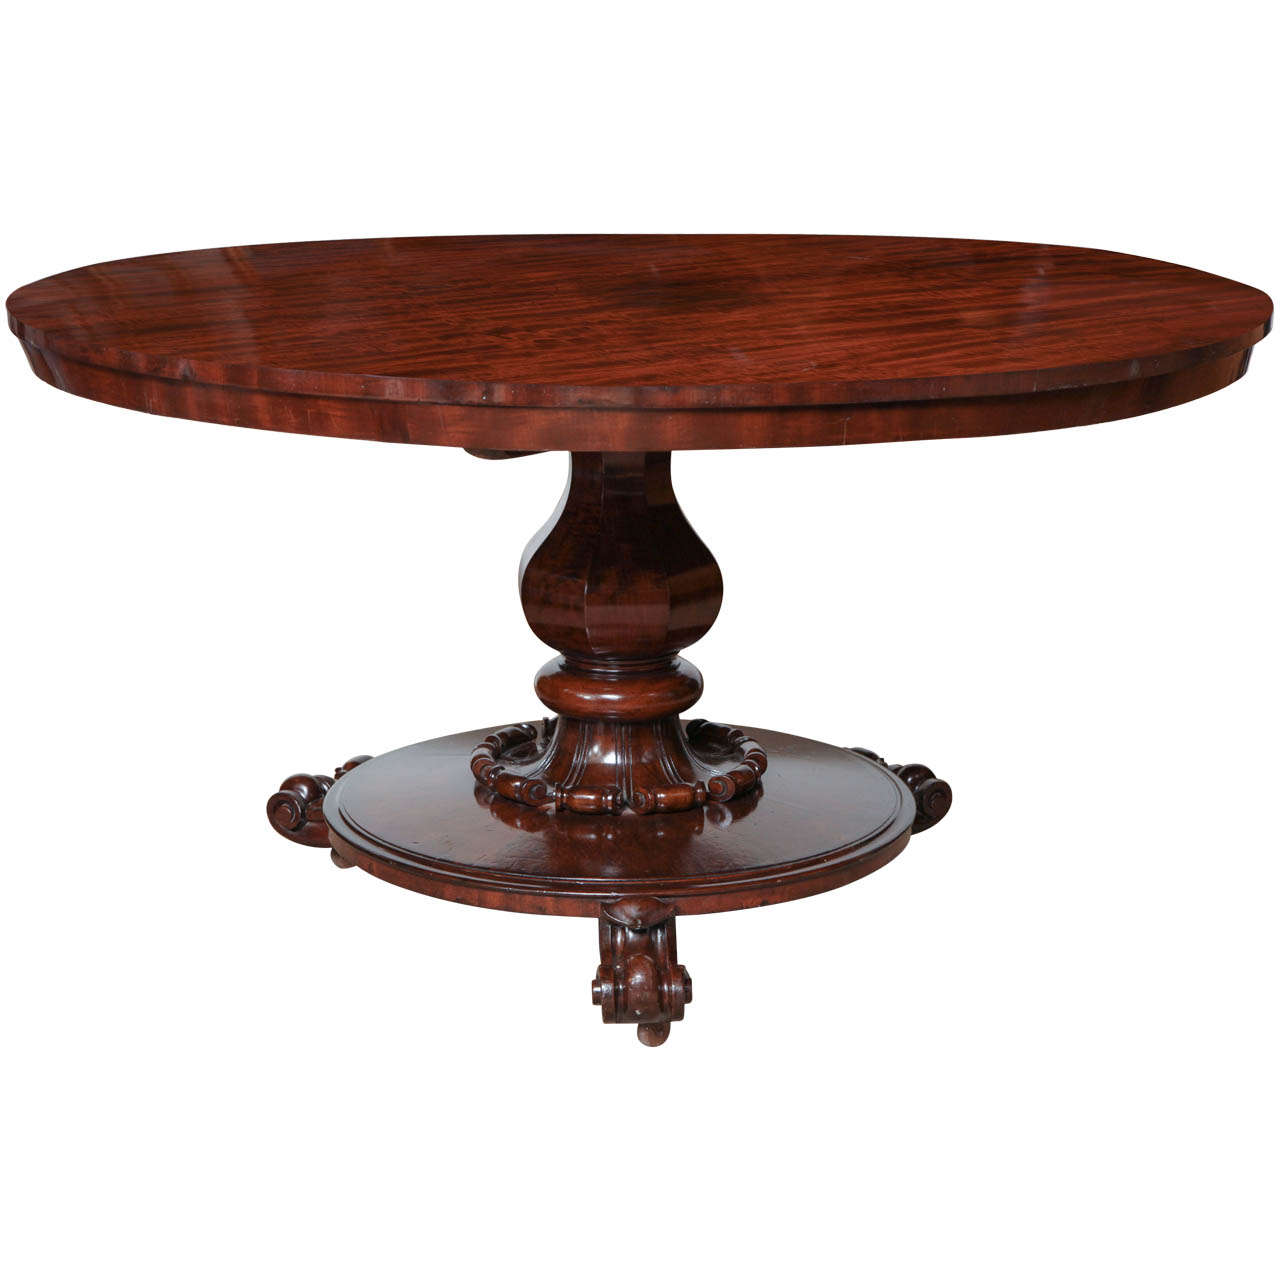 19th Century Irish, Mahogany Centre Pedestal Table